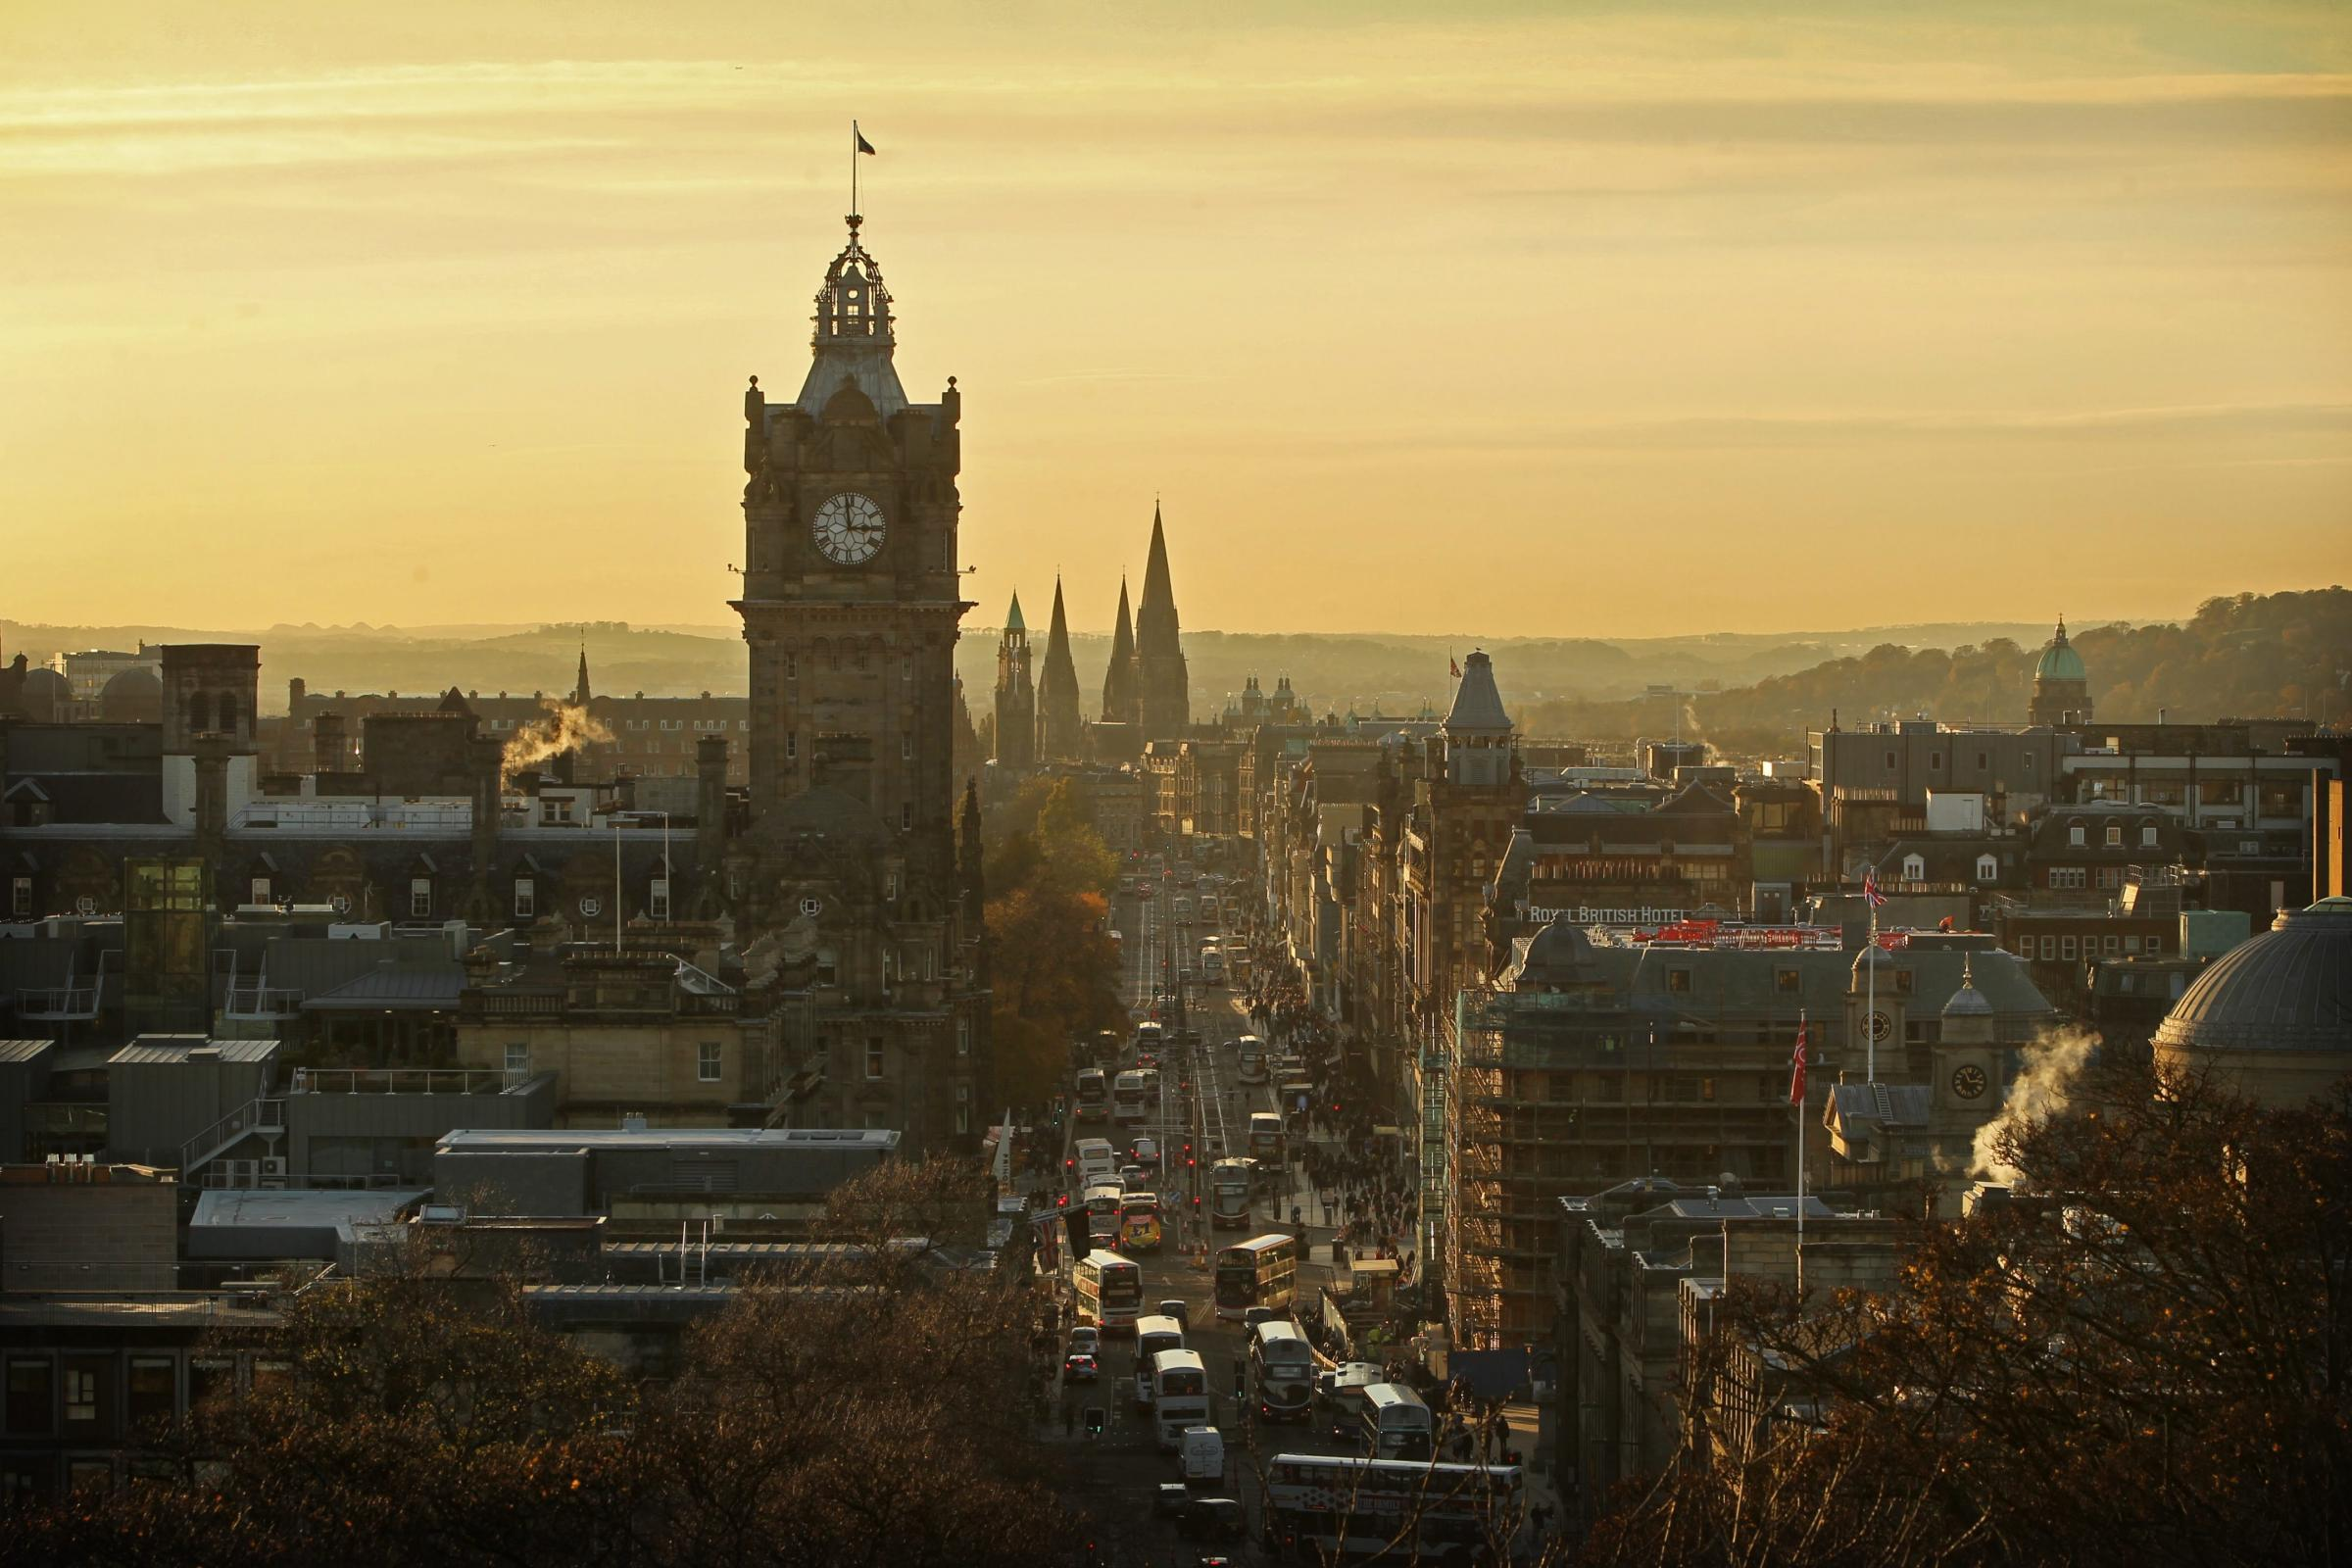 Edinburgh thrives as it defies fallout from financial crisis